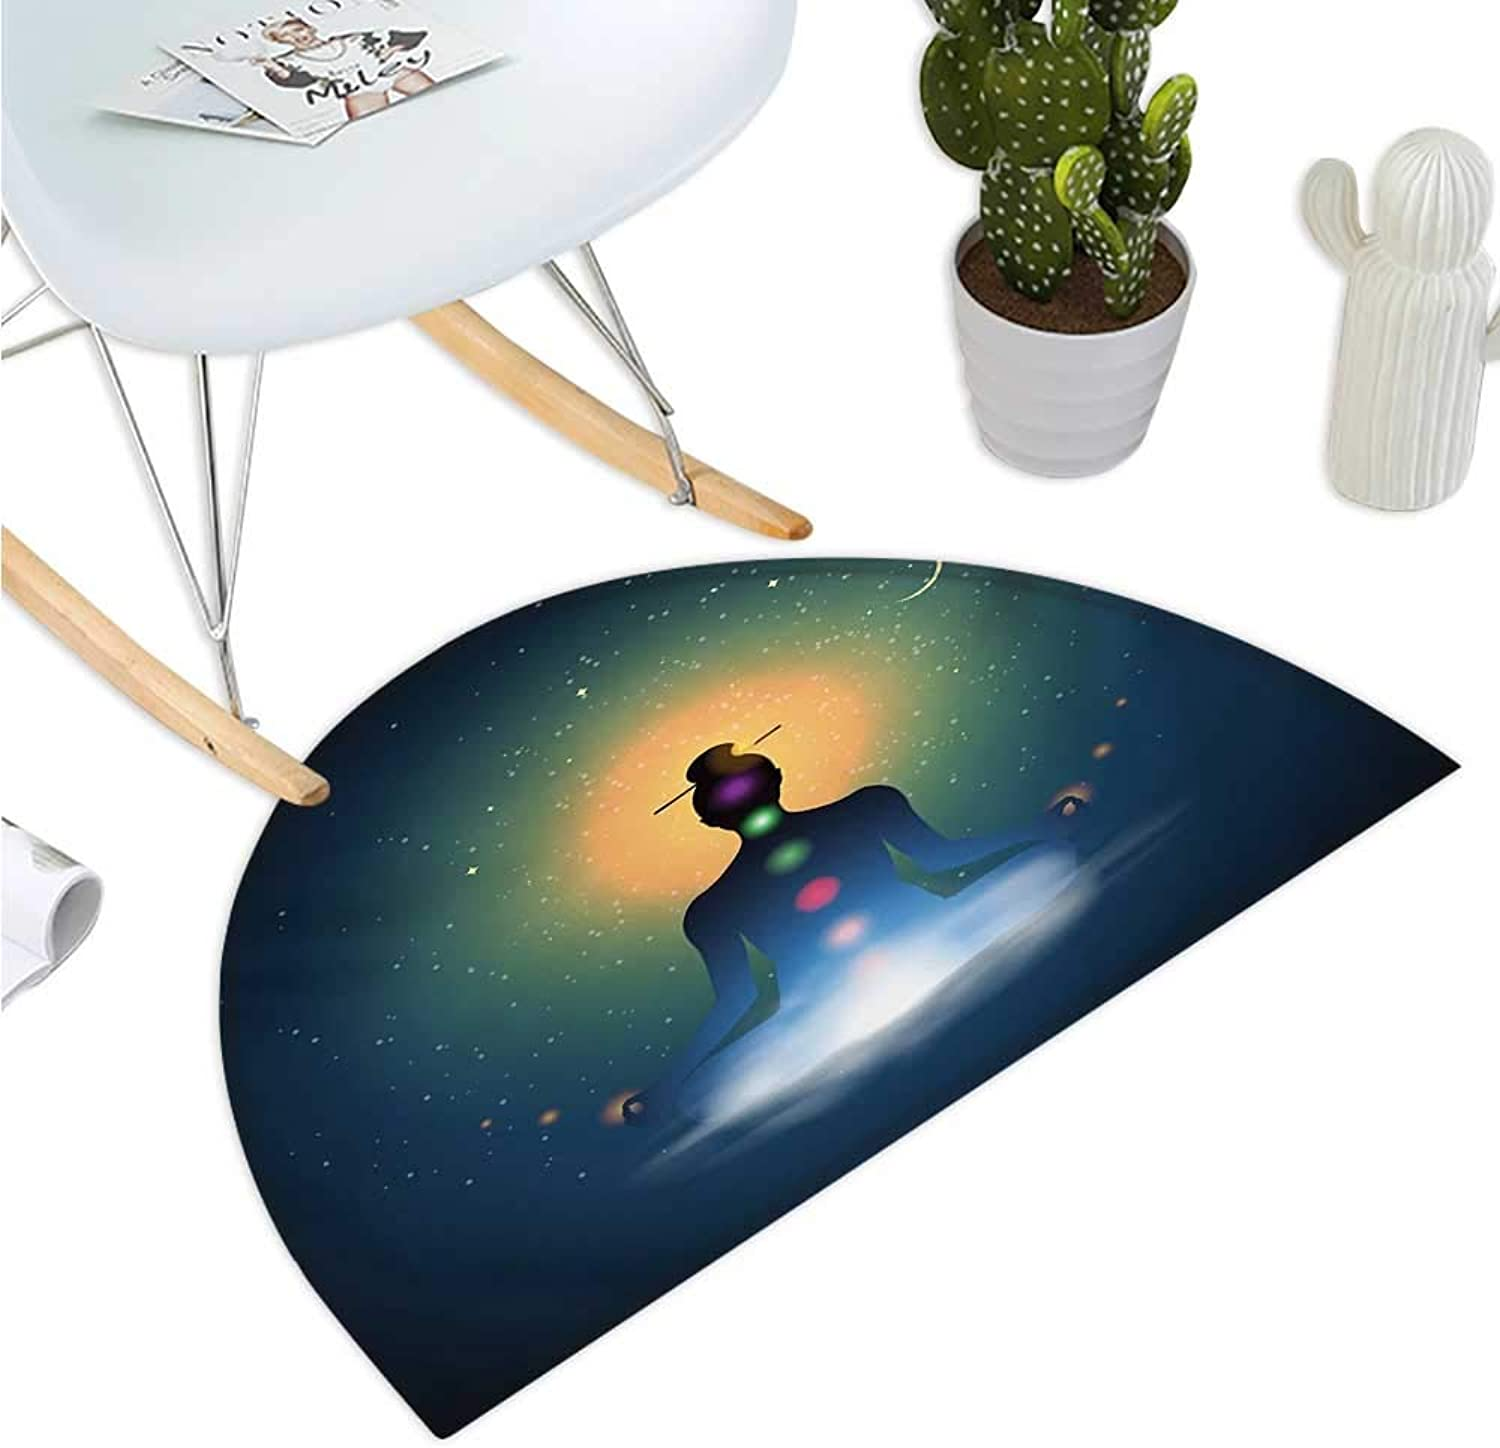 Yoga Semicircular Cushion Meditating Silhouette Sitting in Lotus Position colorful Chakras Trance Mood Happiness Halfmoon doormats H 35.4  xD 53.1  Multicolor